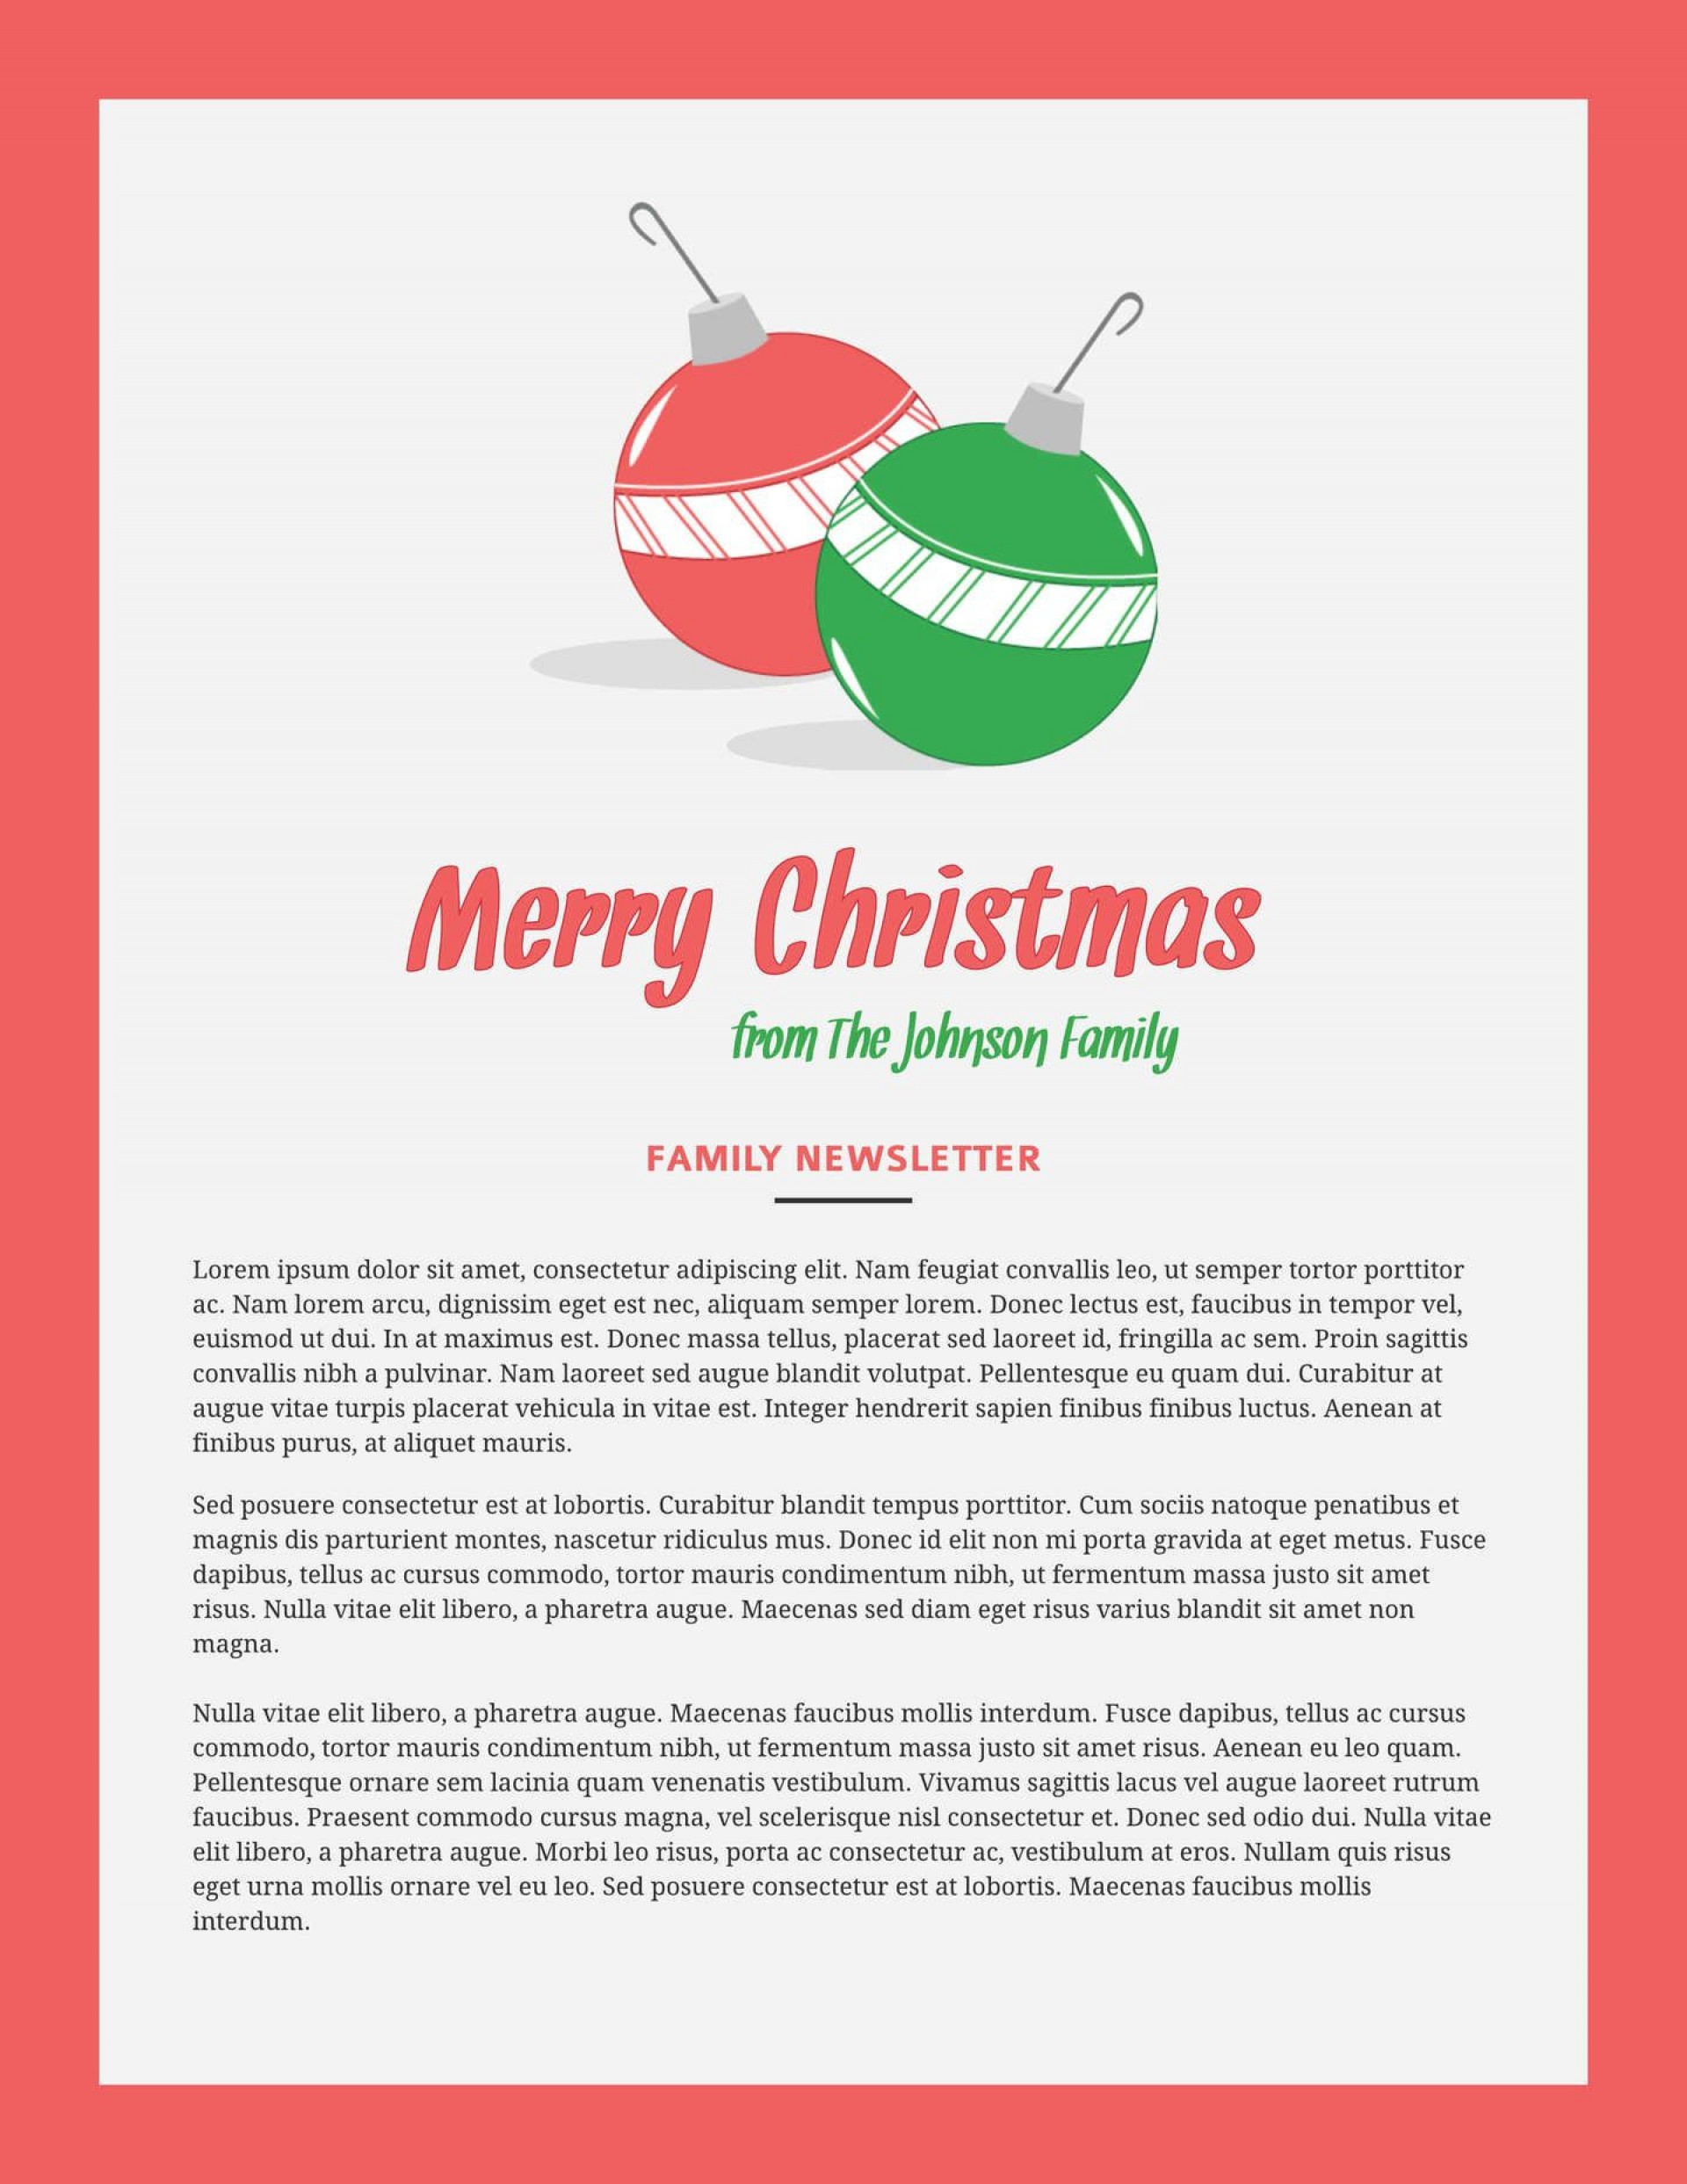 007 Stirring Holiday E Mail Template Inspiration  Templates Mailchimp Email1920